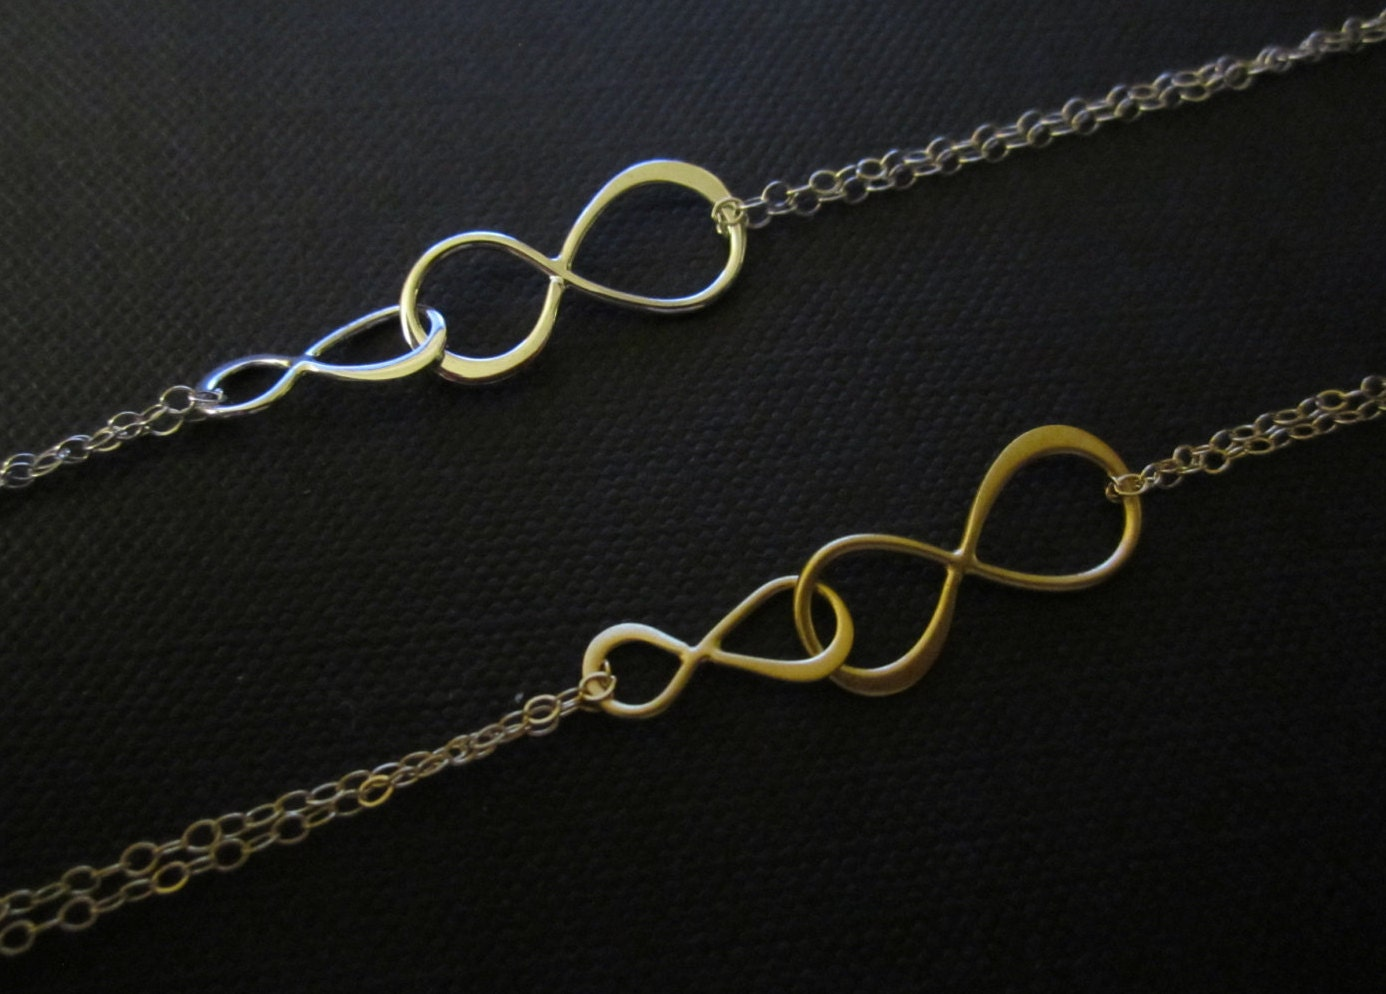 kaystore accents daughter kay silver diamond infinity zm necklace sterling en symbol mv mother